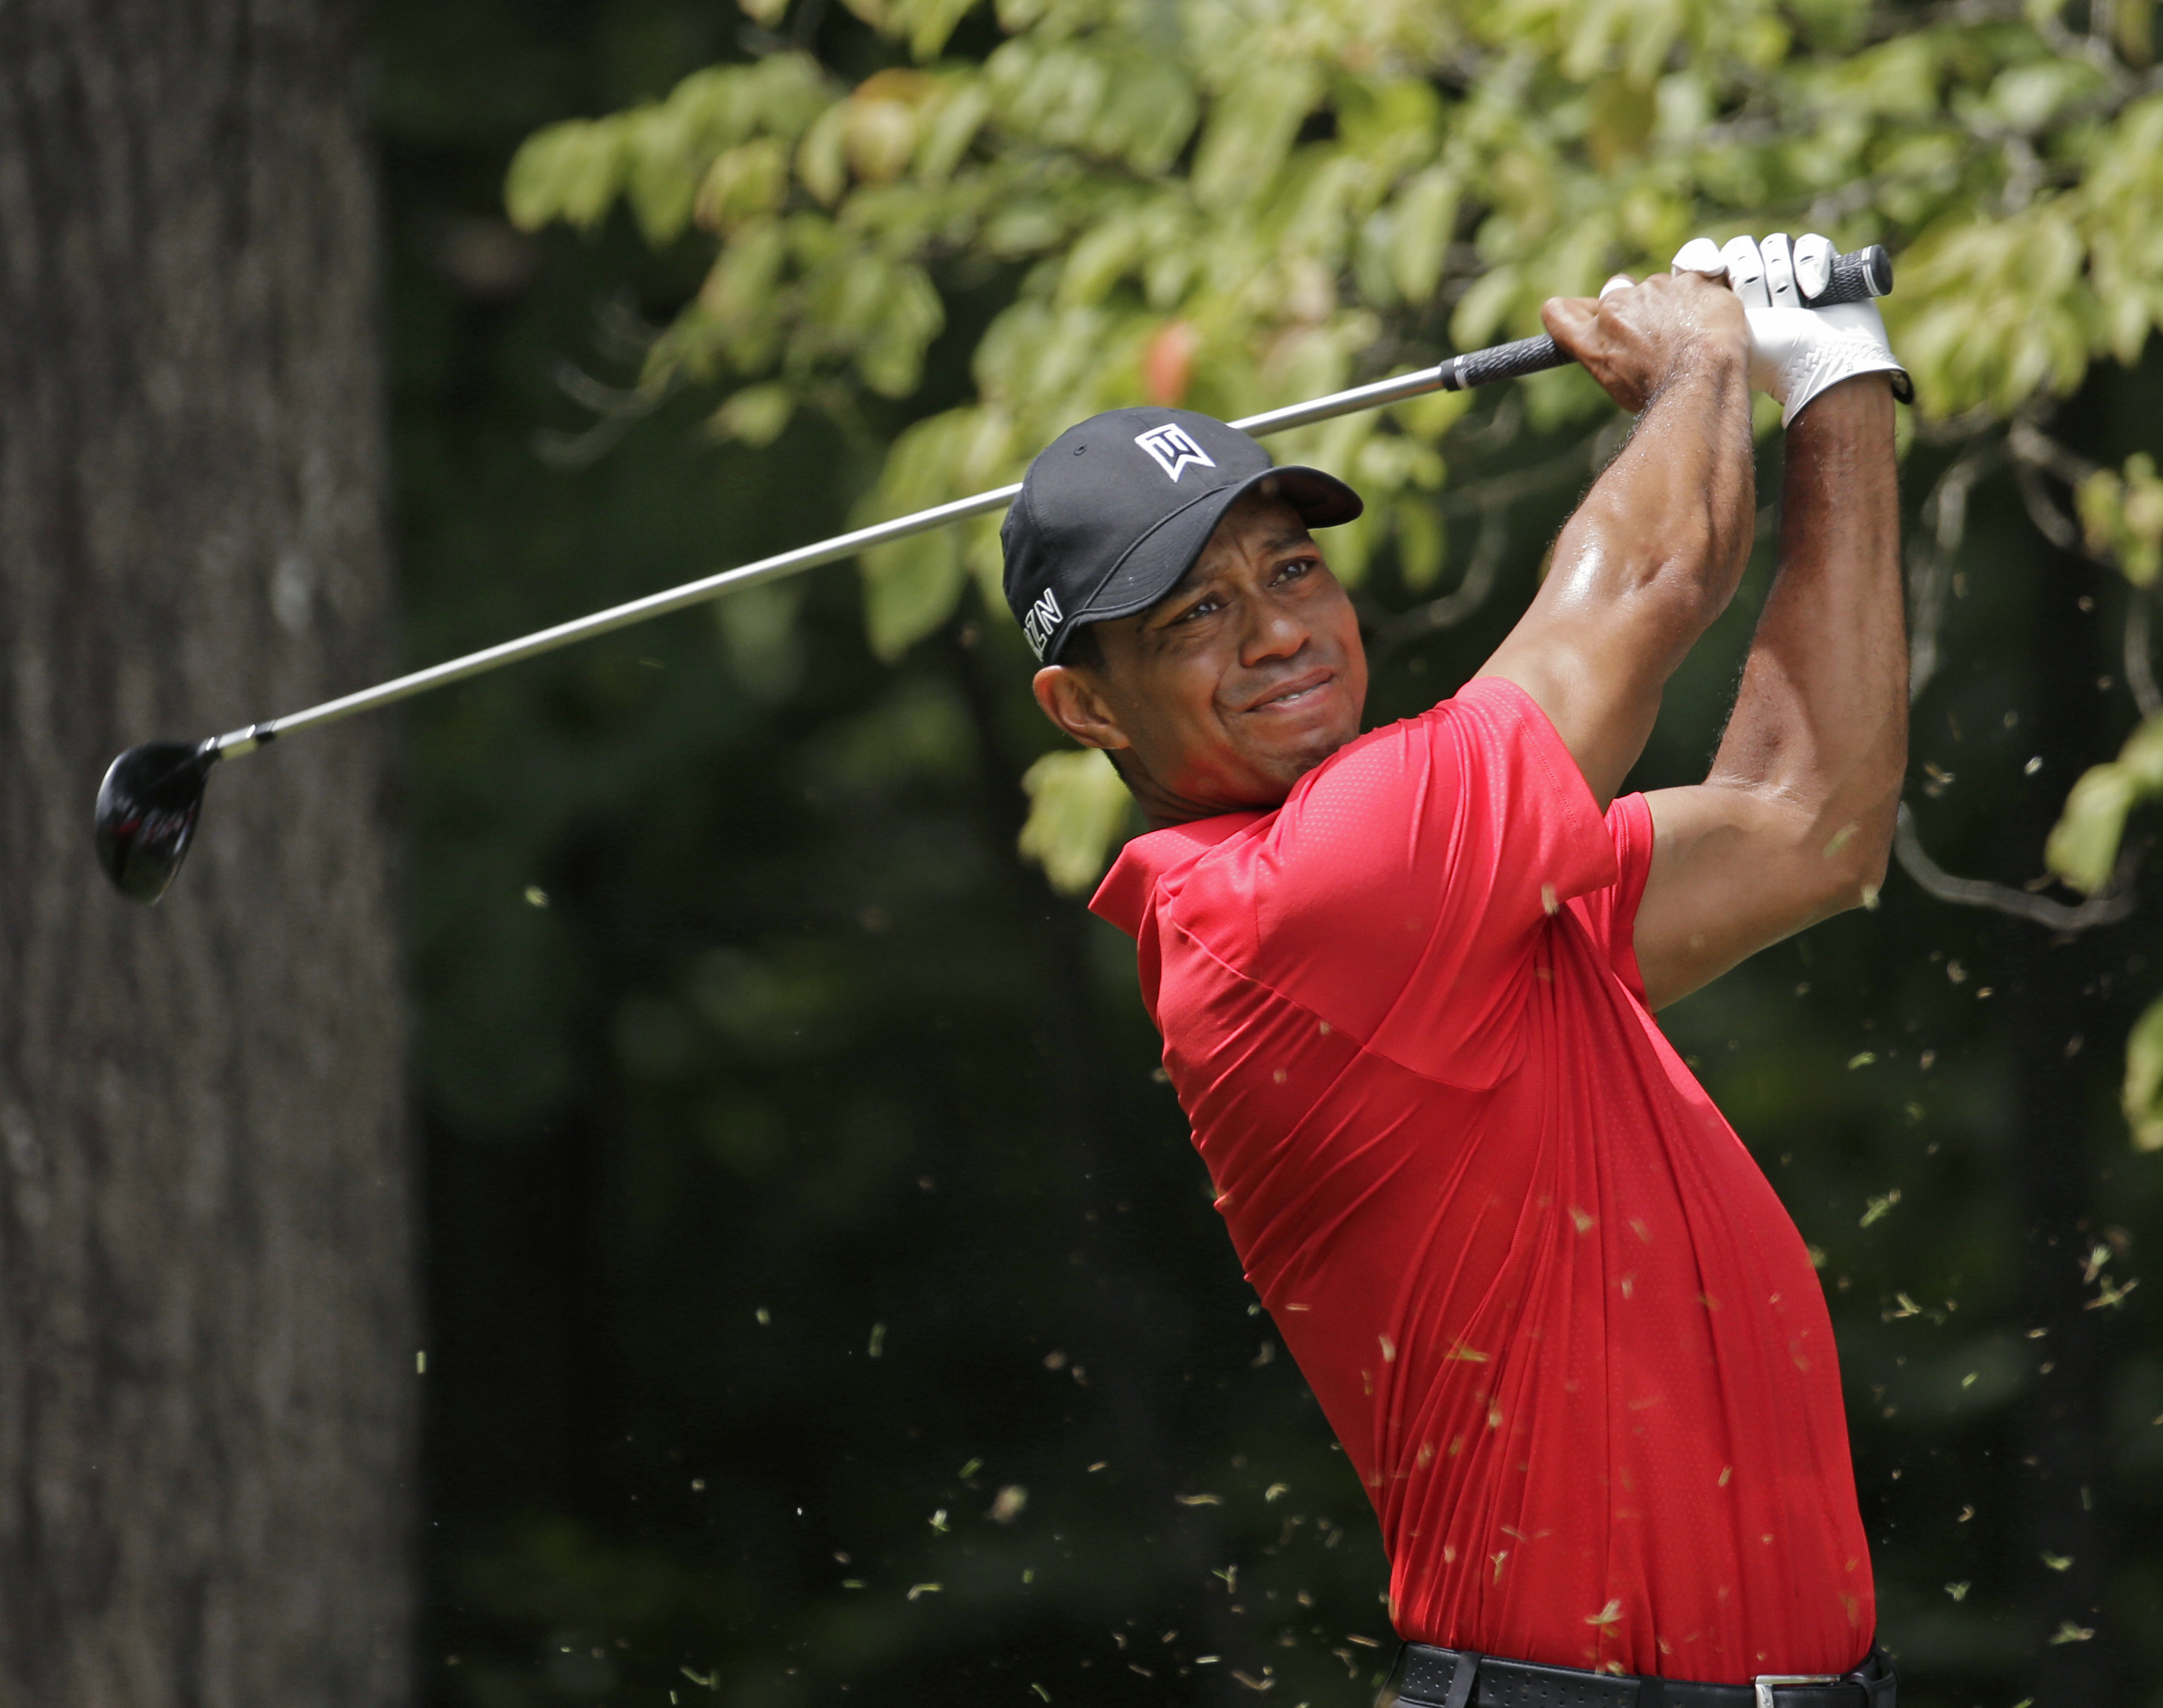 FILE - In this Aug. 23, 2015, file photo, Tiger Woods watches his tee shot on the second hole during the final round of the Wyndham Championship golf tournament at Sedgefield Country Club in Greensboro, N.C. Tiger Woods has posted a video of him swinging